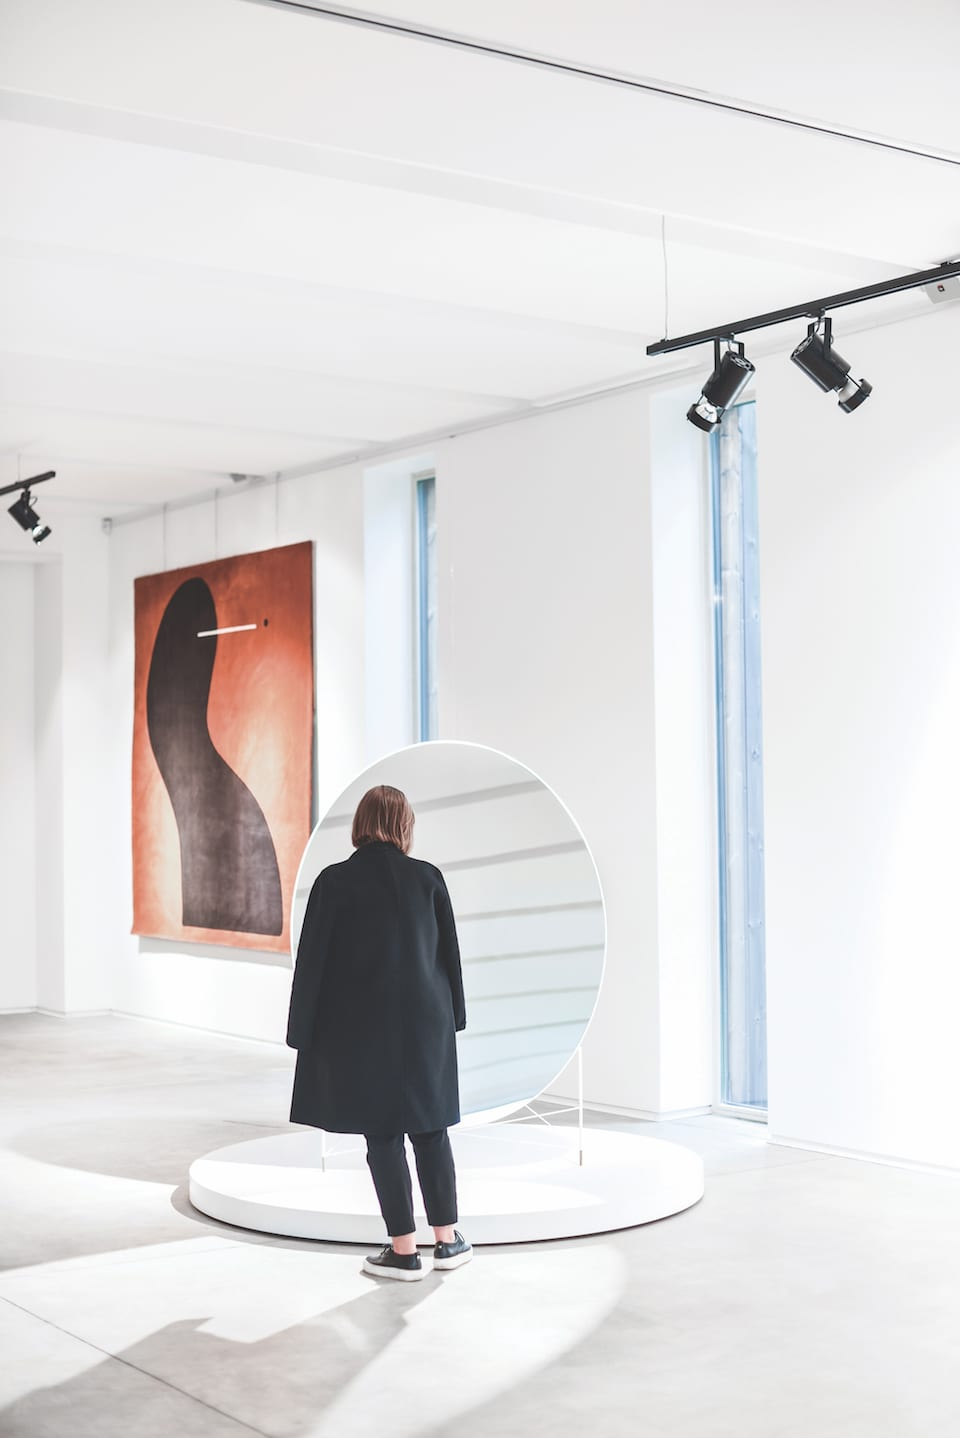 Carpets by jot.jot at Stockholm Furniture Fair 2018 | Yellowtrace